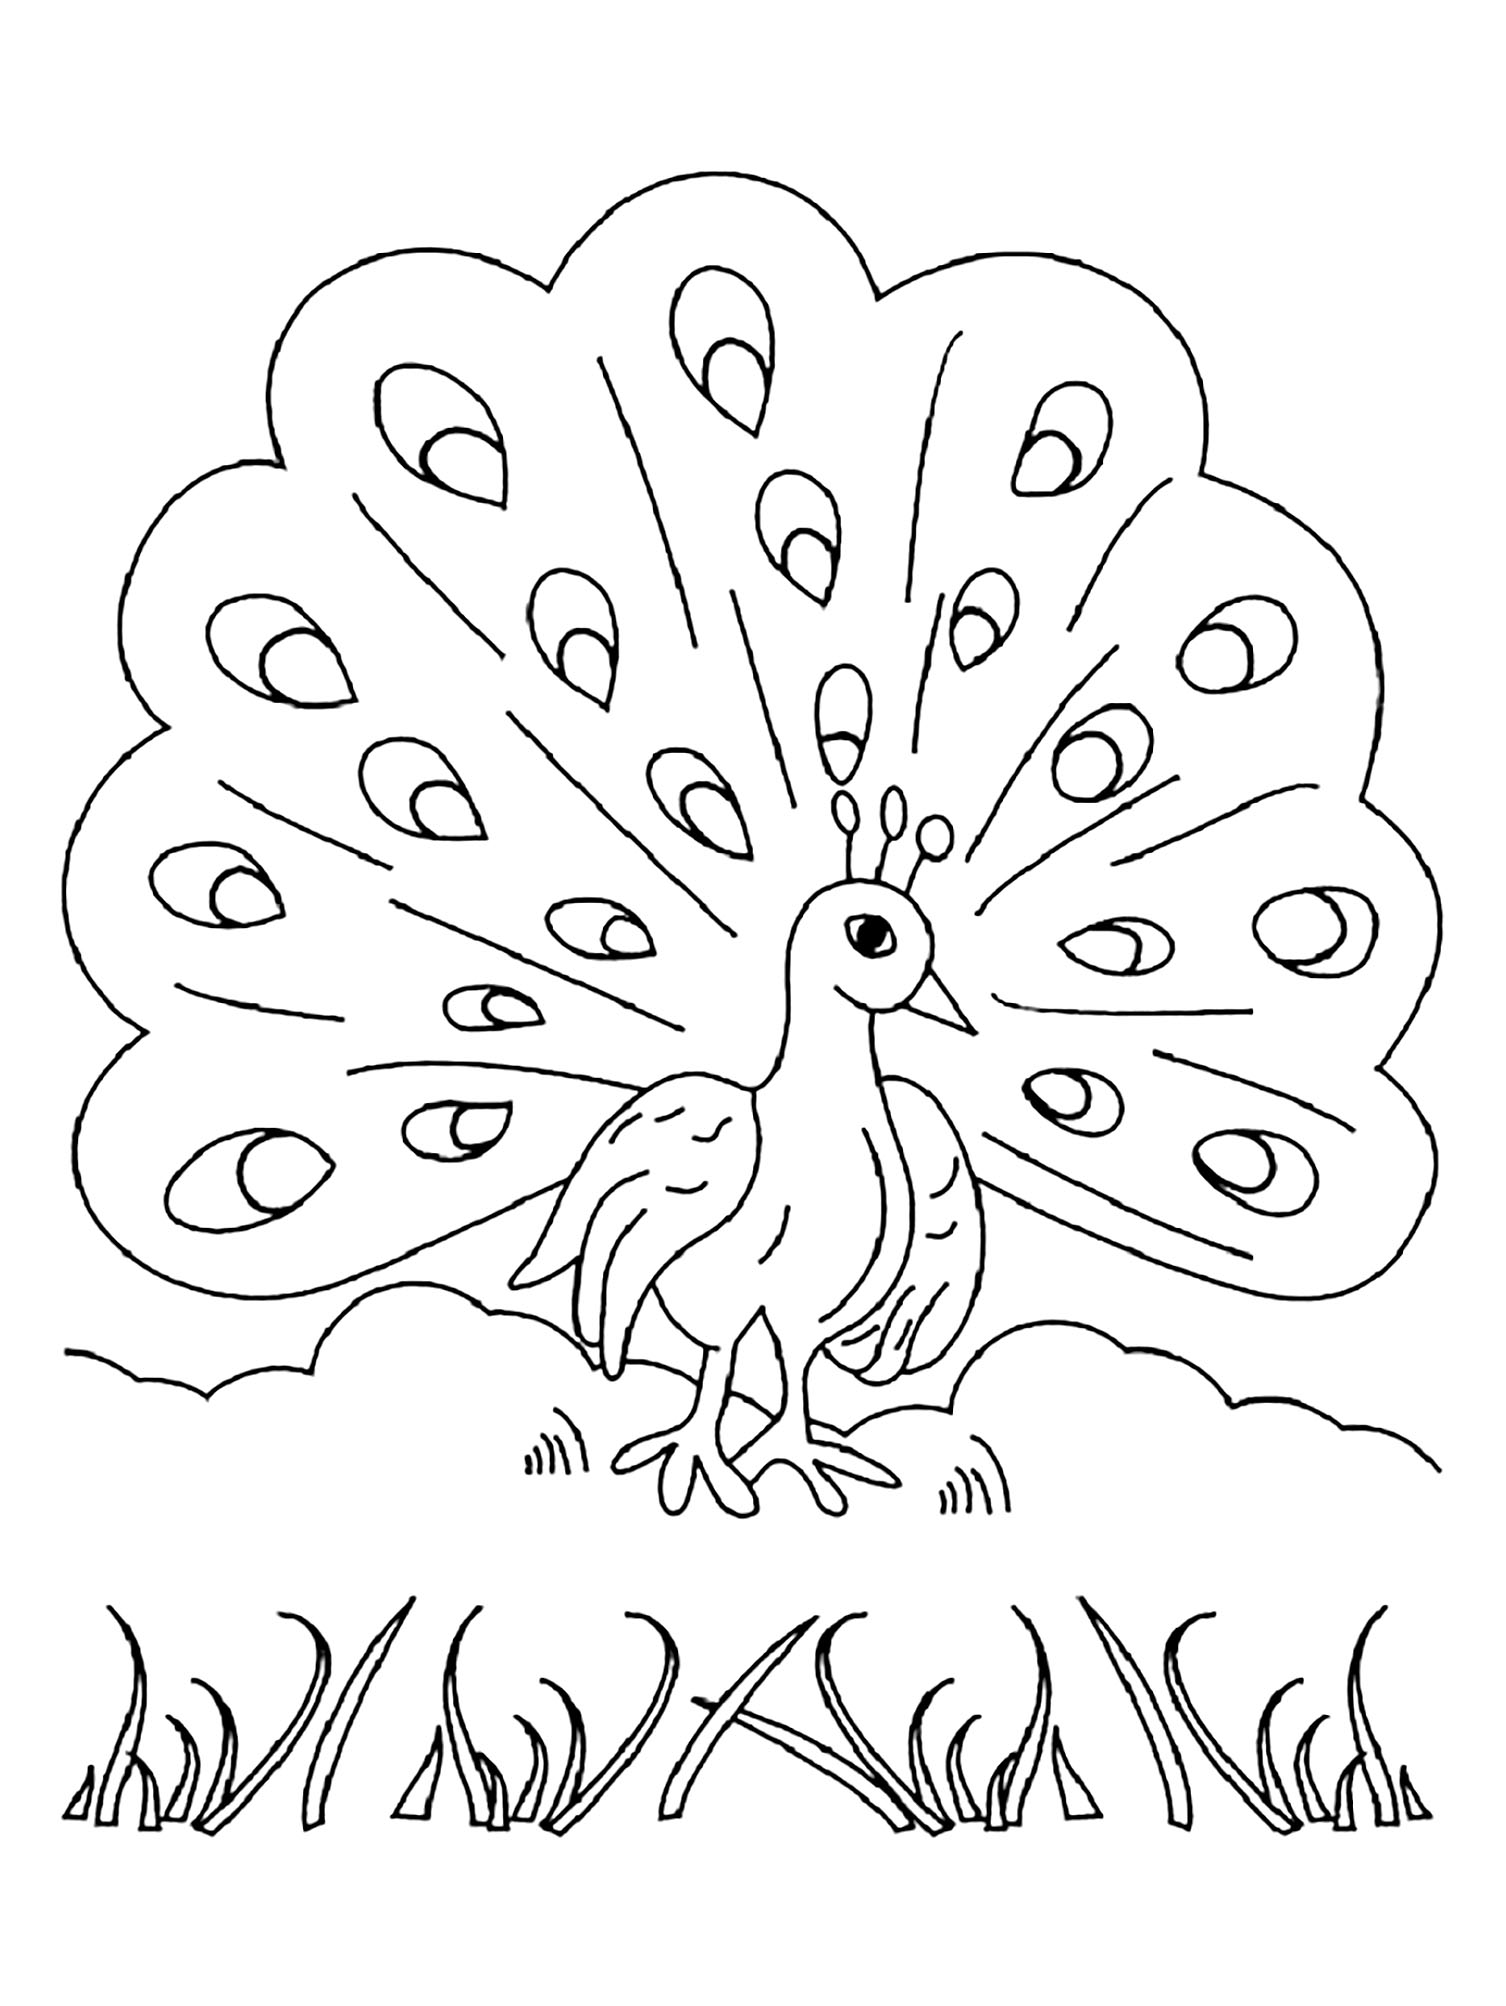 coloring pages of peacock printable peacock coloring pages for kids cool2bkids pages peacock coloring of